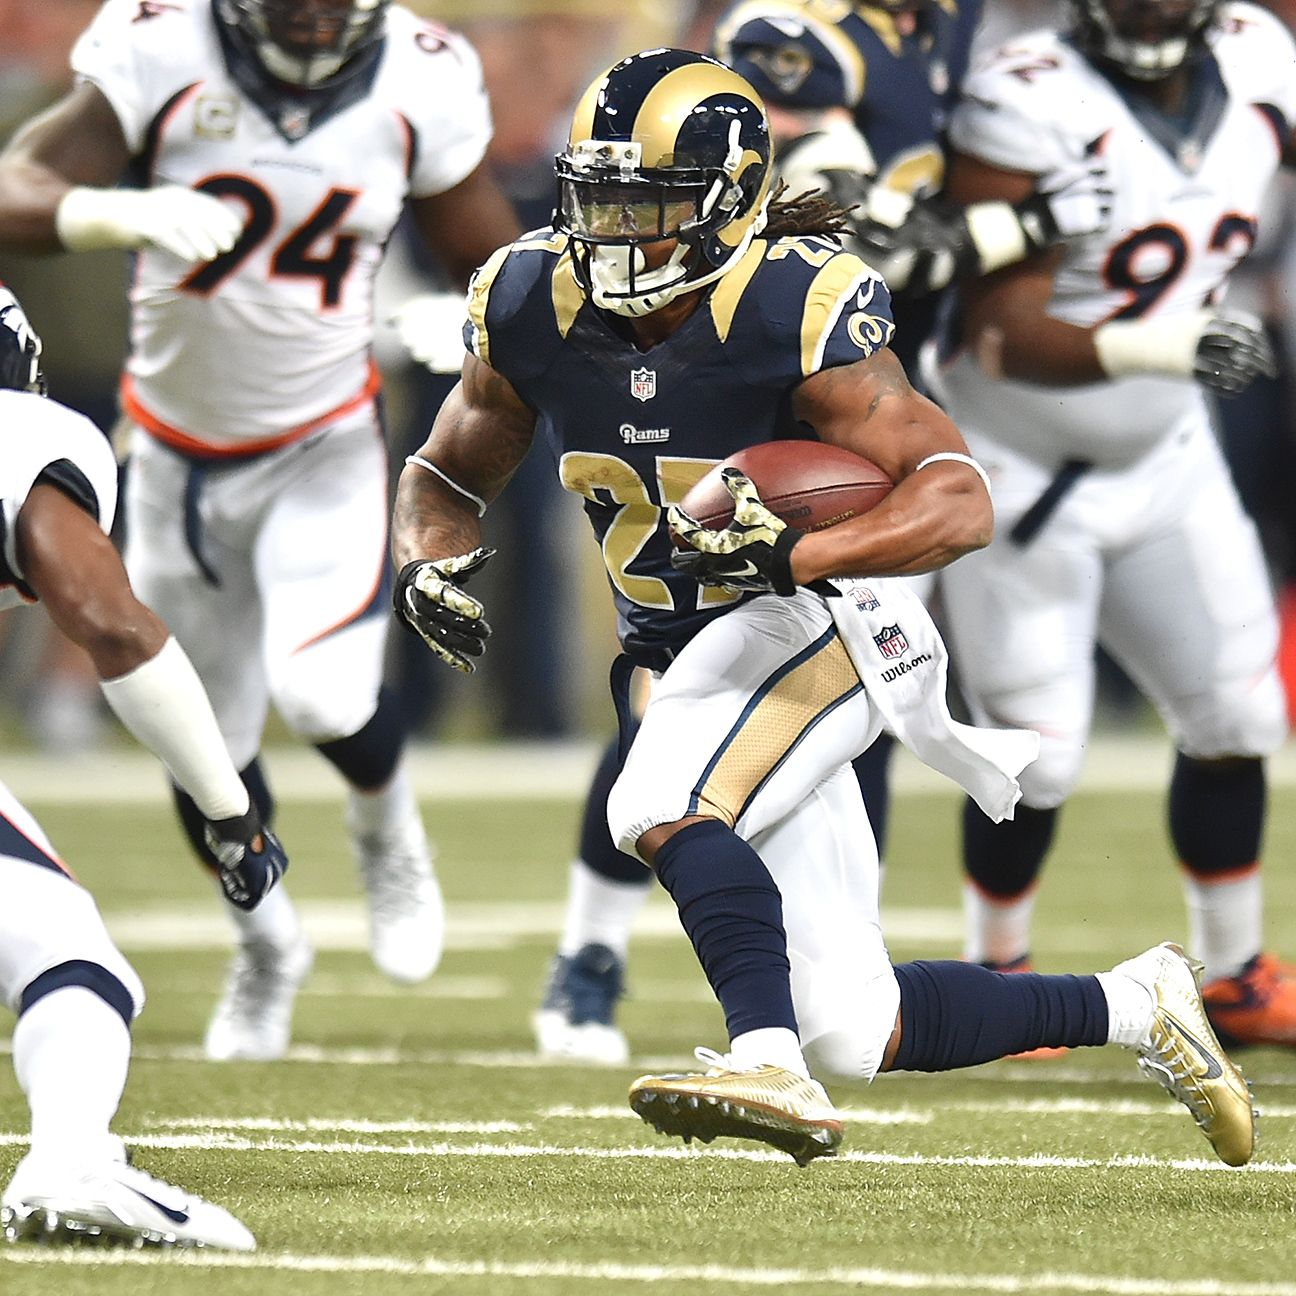 After Adding Todd Gurley Here S How Rams Rbs Could Look In 2015 Todd Gurley St Louis Rams Sports Pictures